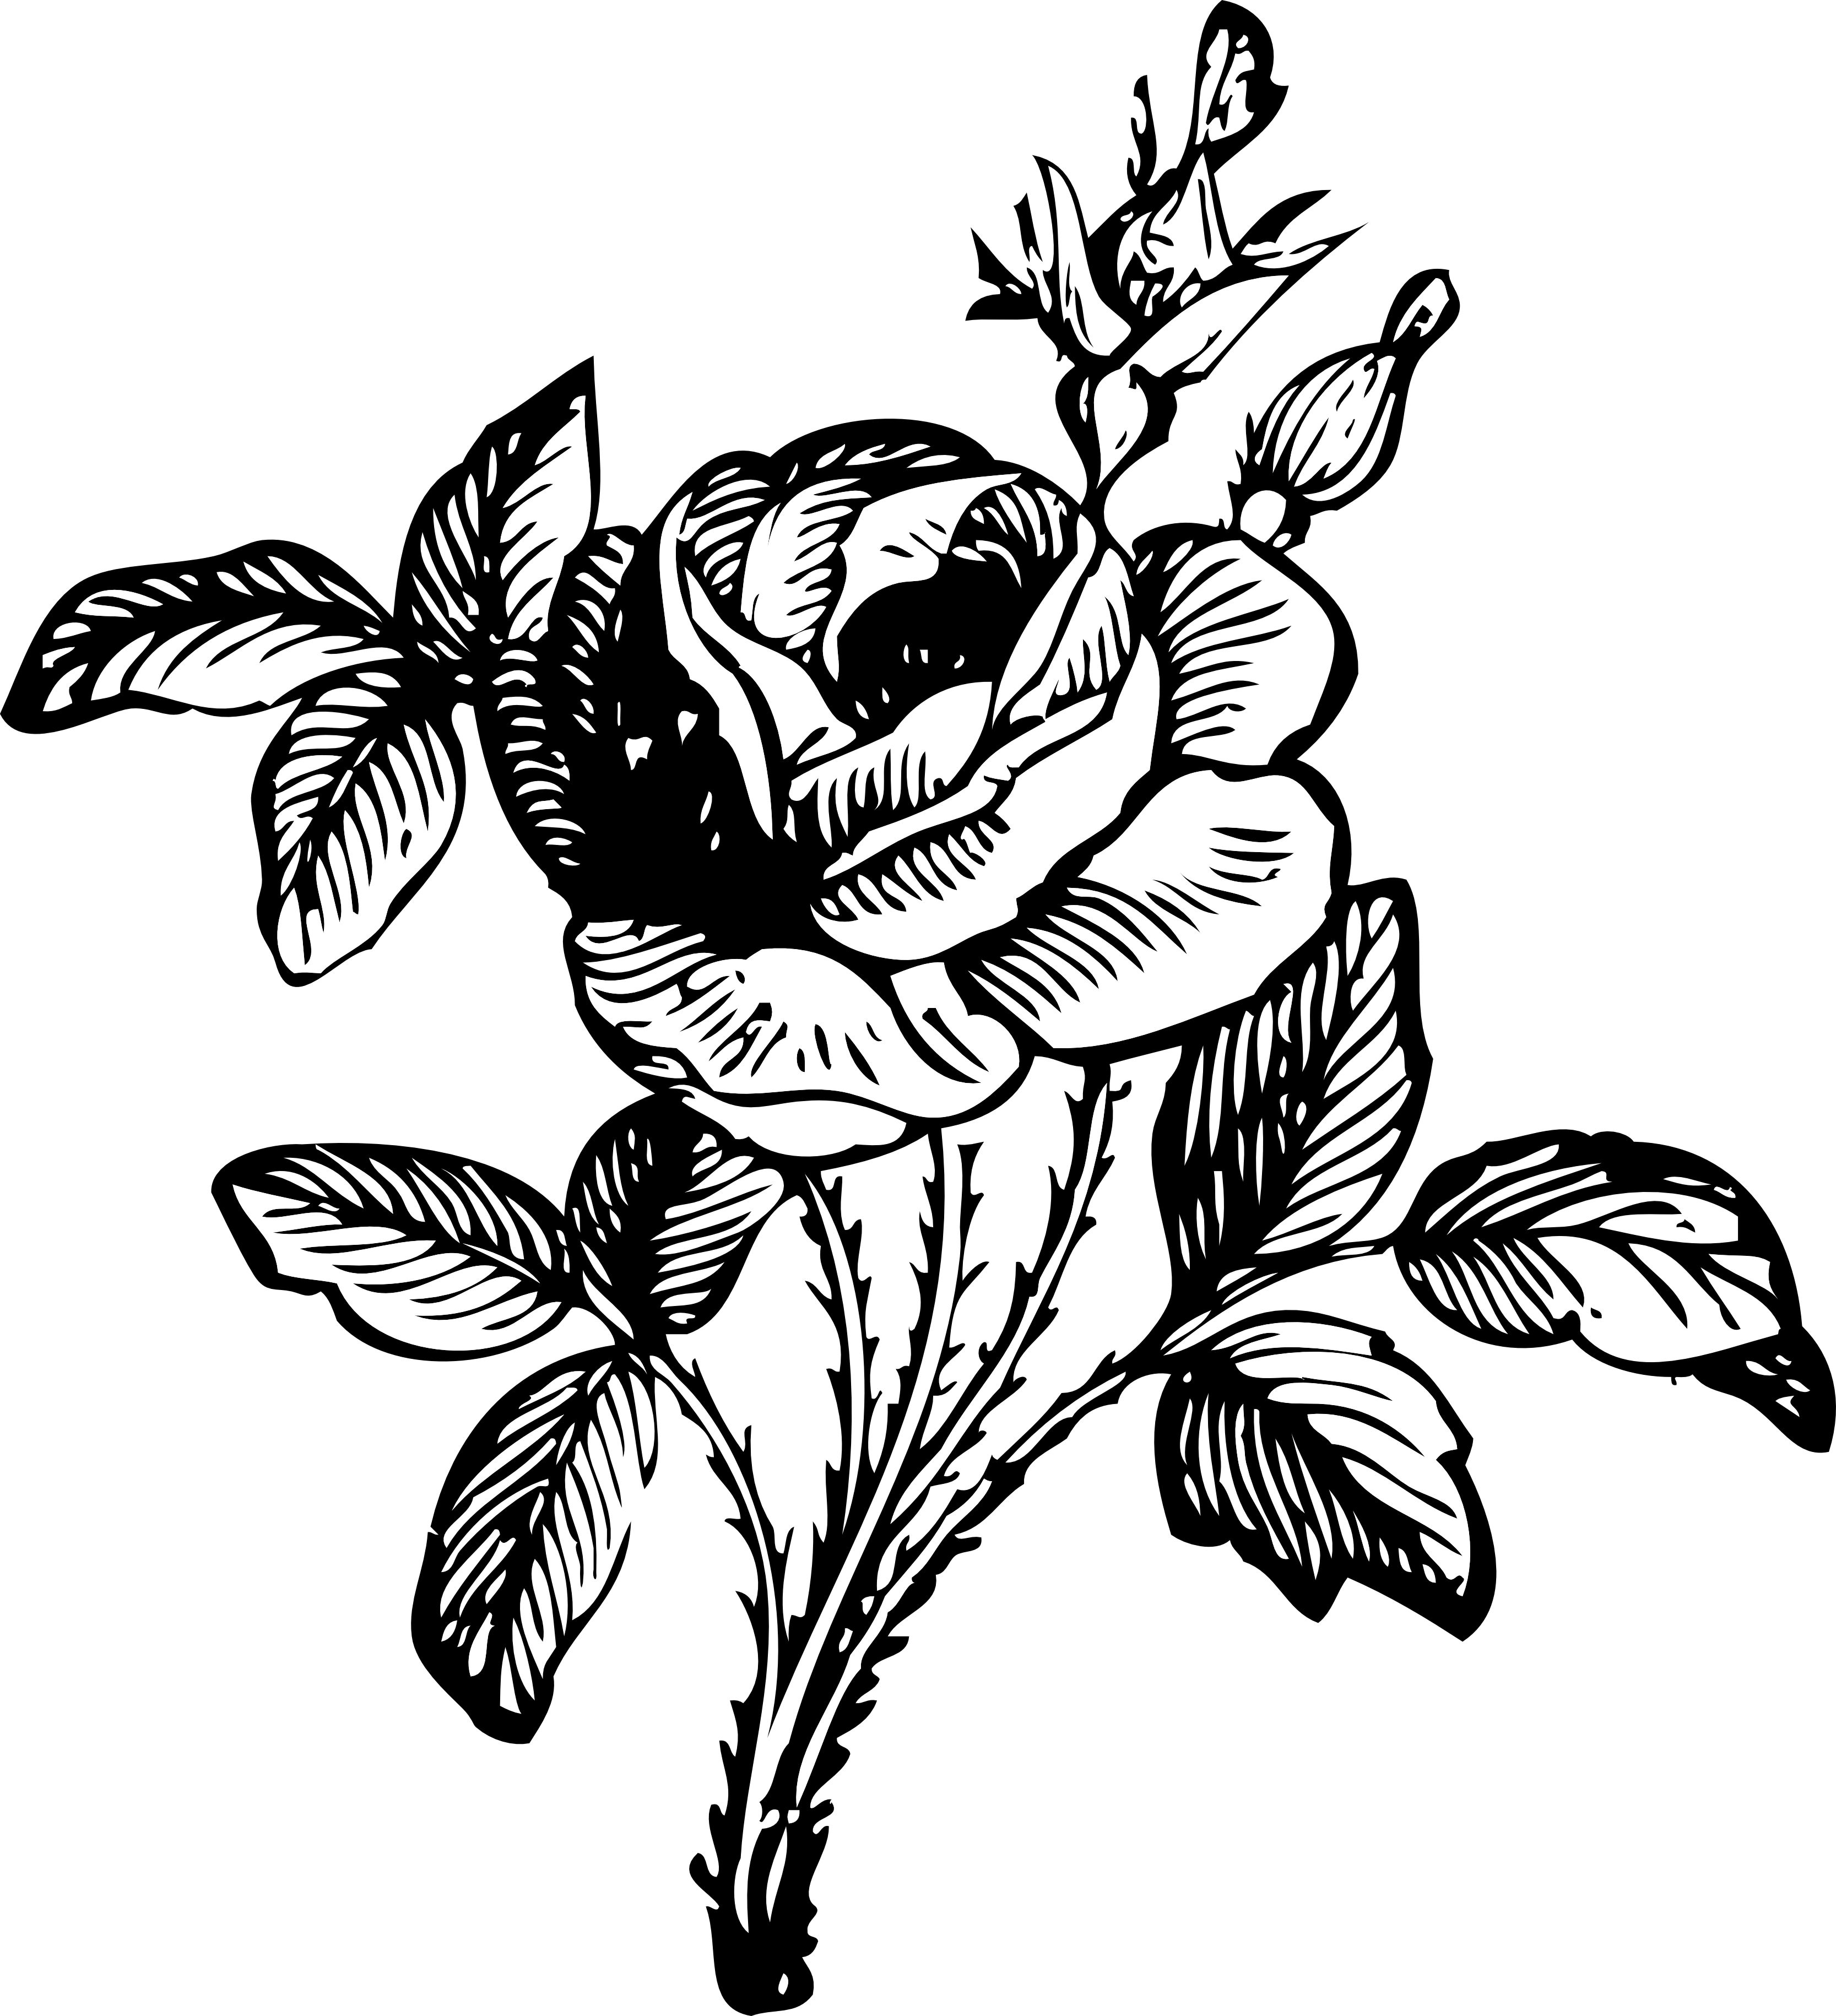 Drawn rose line art Library And Download Free